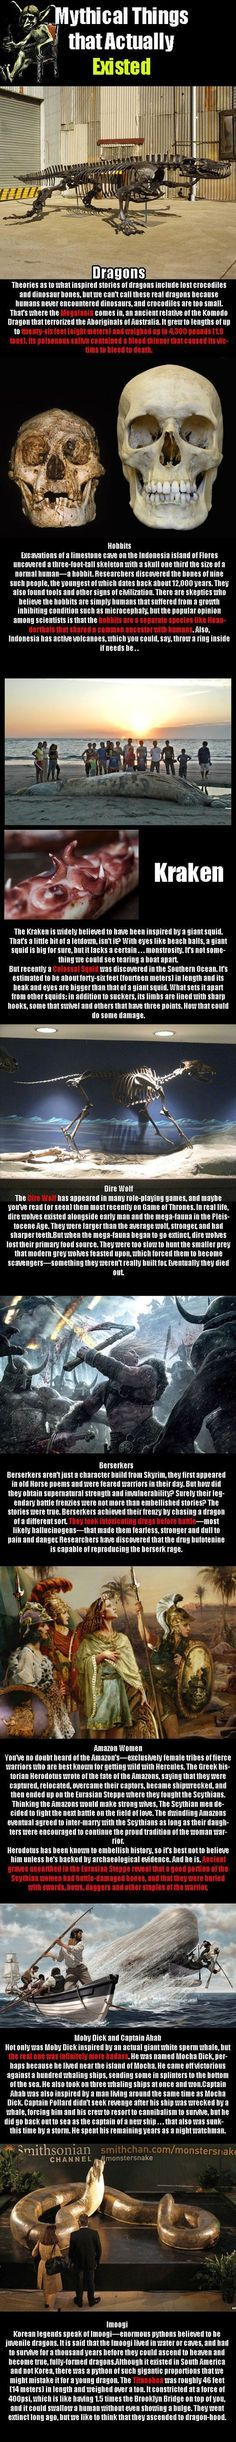 Mythical things that may have existed...